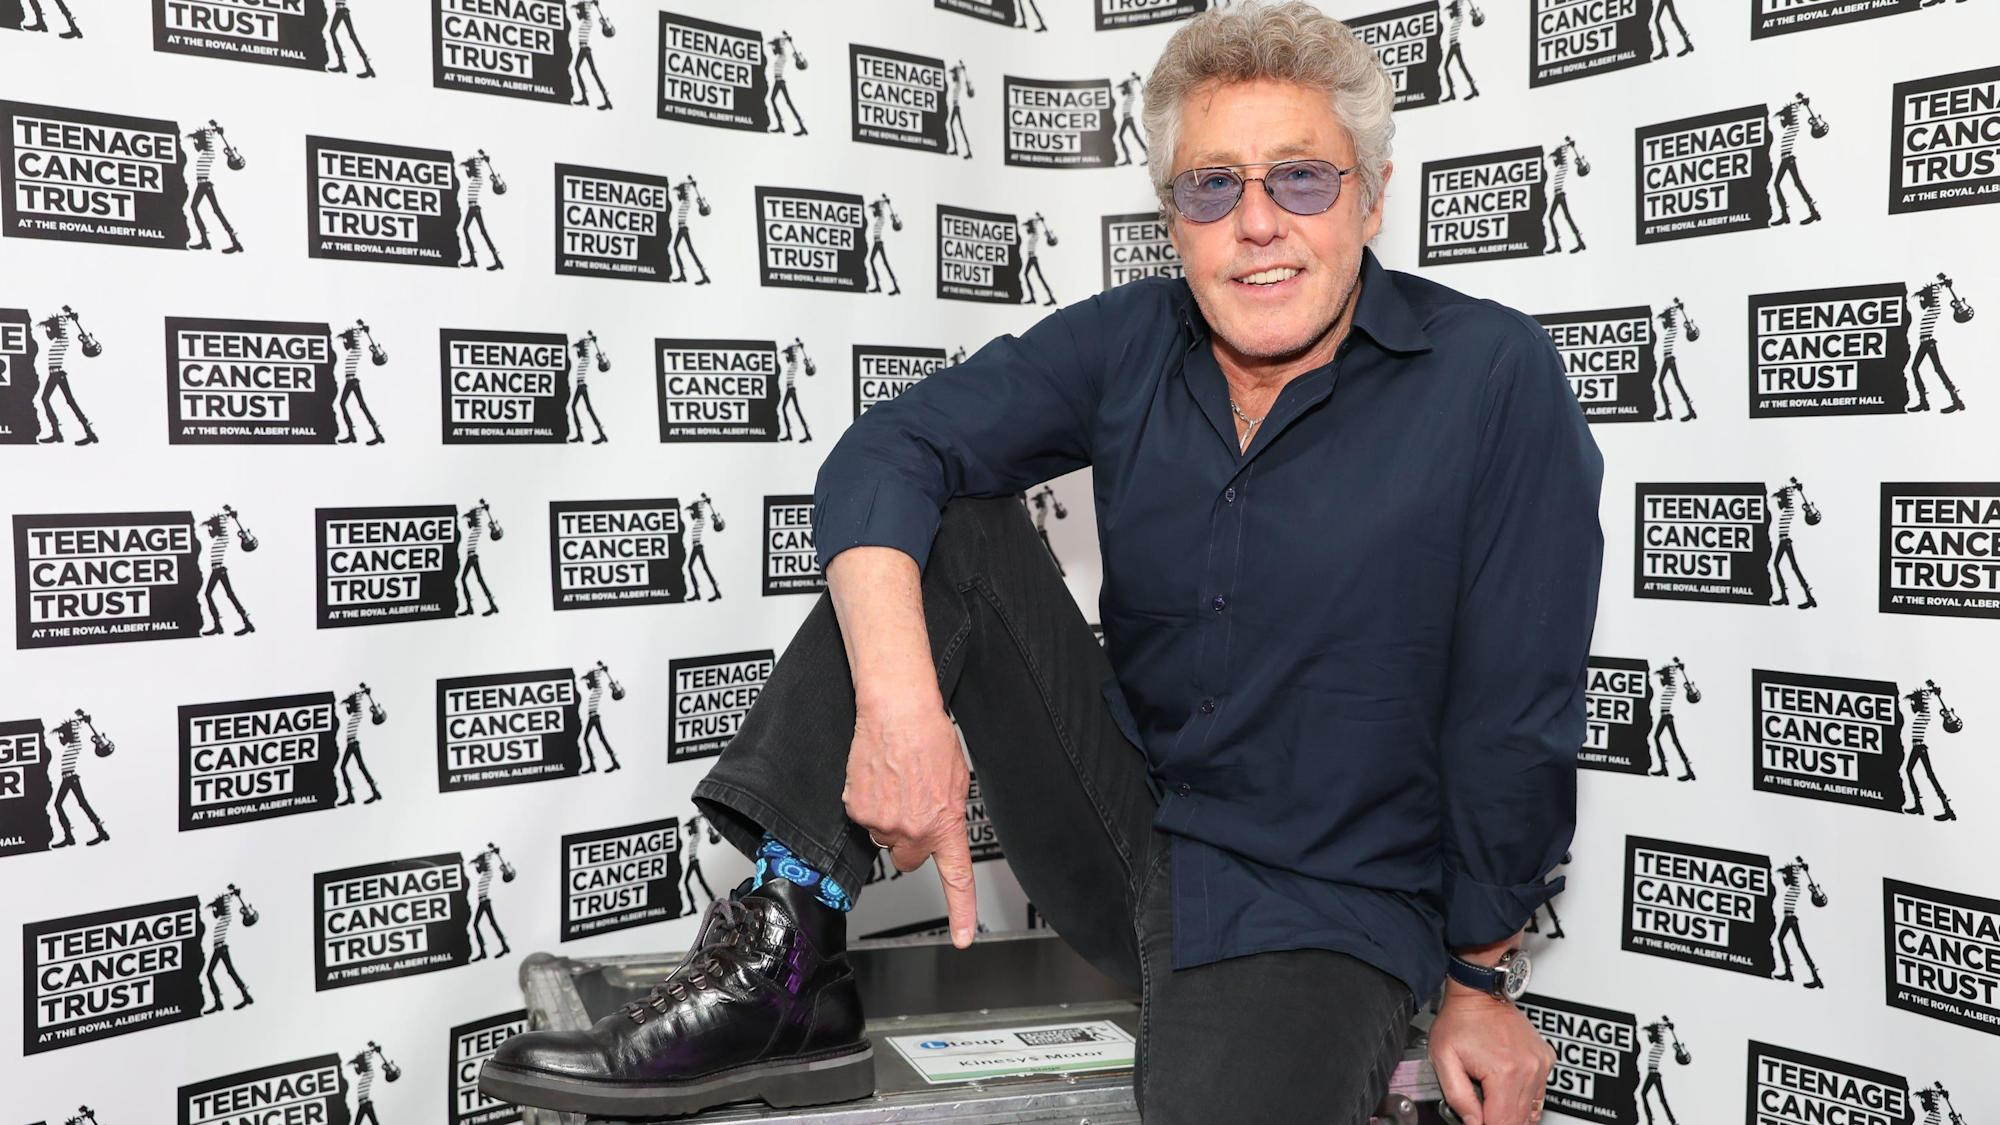 Roger Daltrey: I'm grateful to have received my coronavirus jab